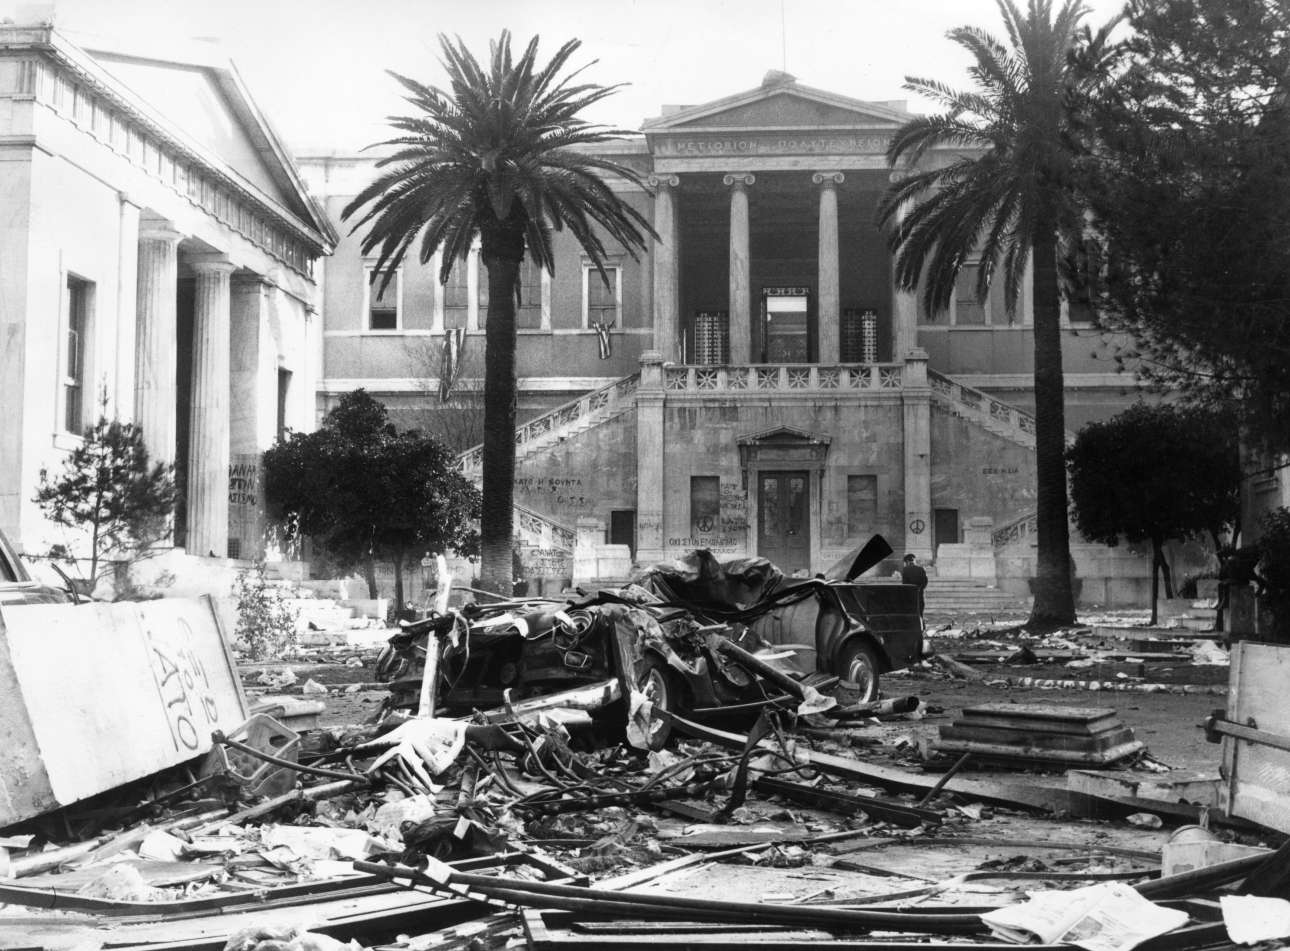 20th November 1973: Burnt-out cars, furniture and other debris in the square outside Athens Polytechnic after a night of street battles around the time of the counter-coup which ousted Papadopoulos during the regime of the Greek Colonels. (Photo by Keystone/Getty Images)